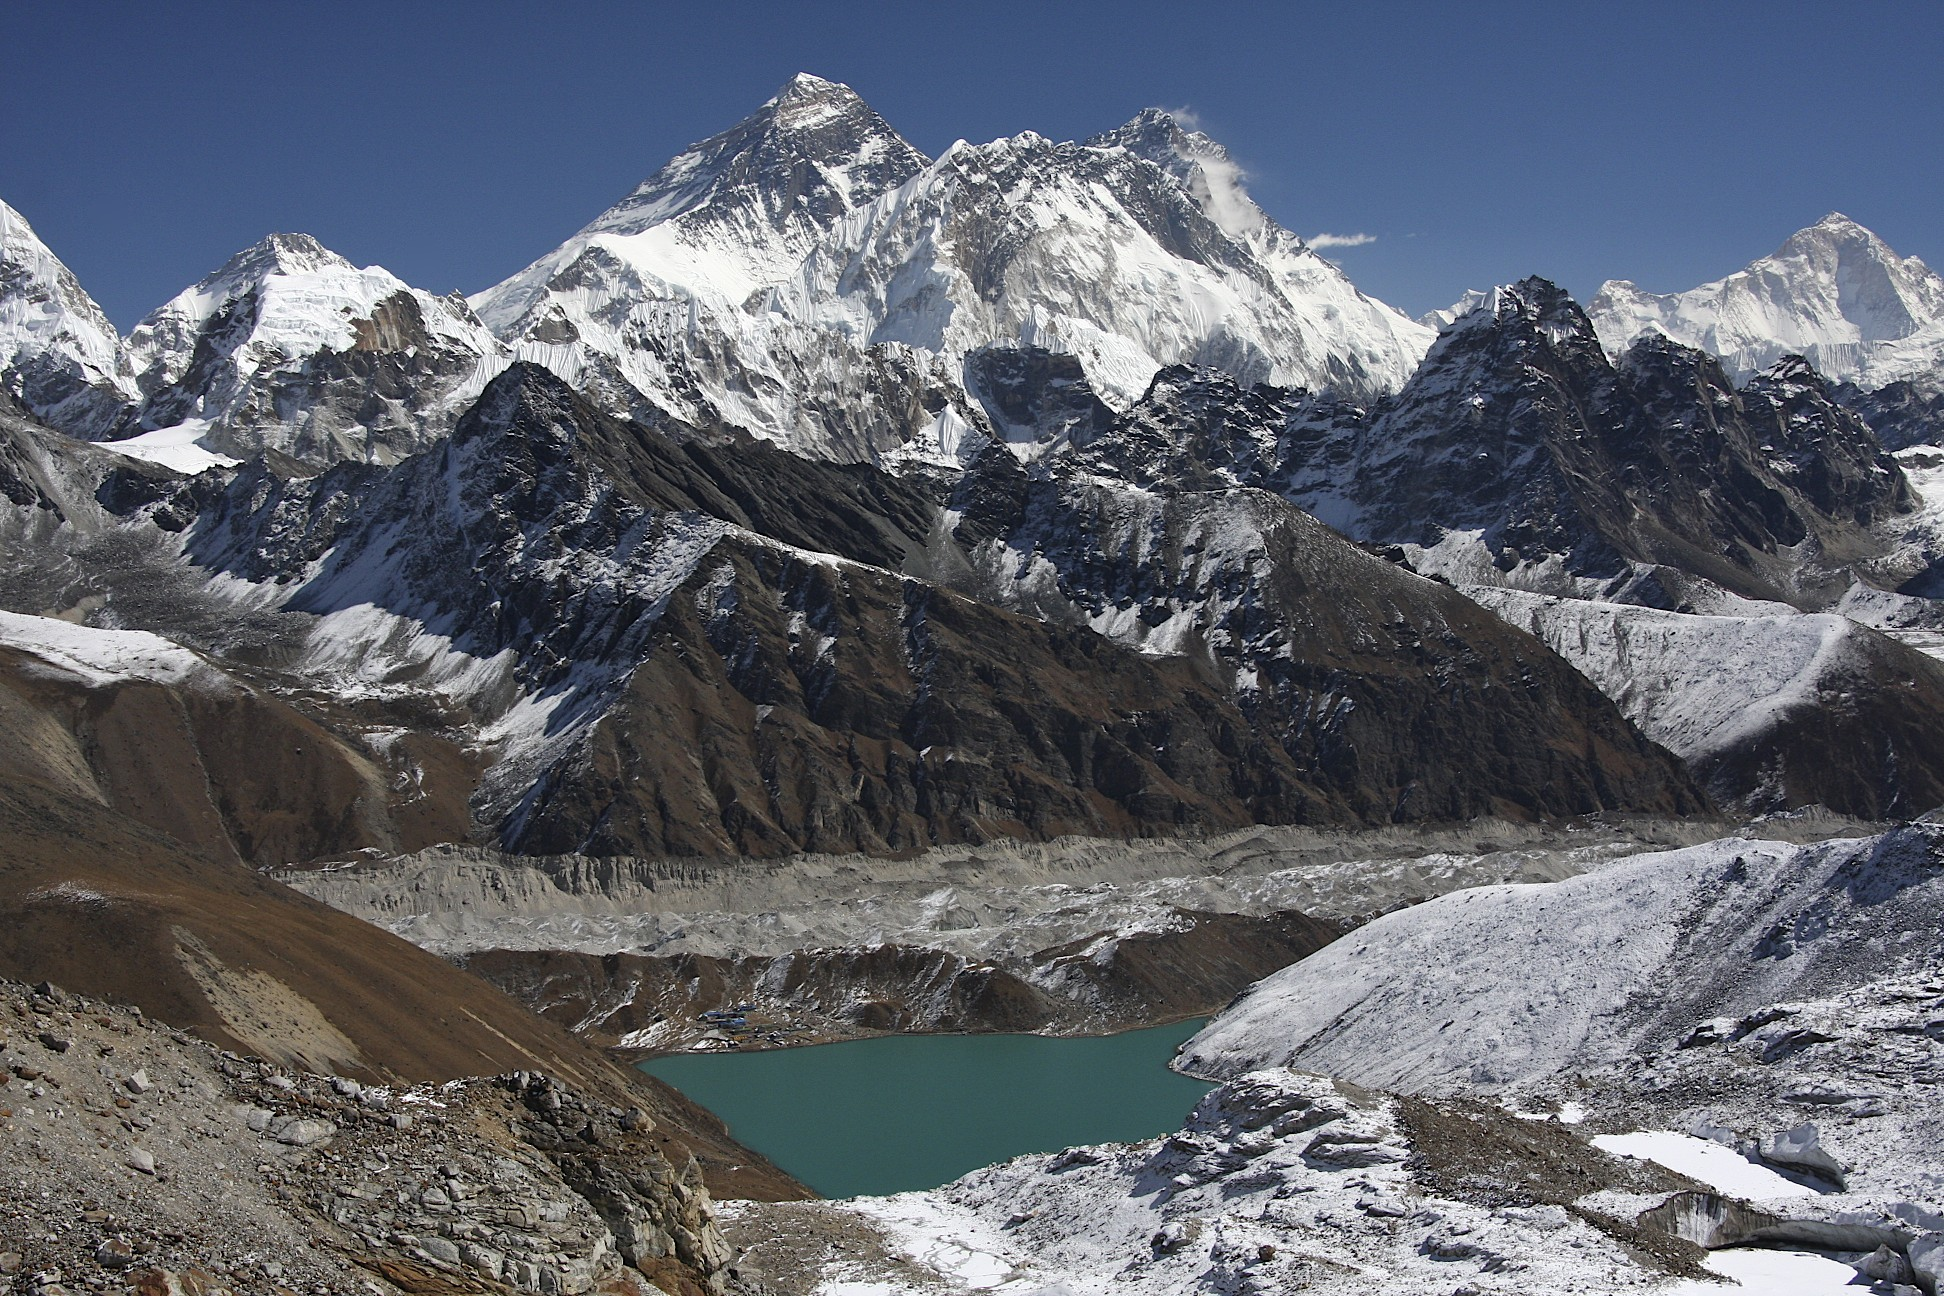 The magnificent panorama from the Renjo La Pass.  Mt. Everest, Nuptse and Lhotse dominate the view.  On the right, far in the distance is Mt. Makalu.